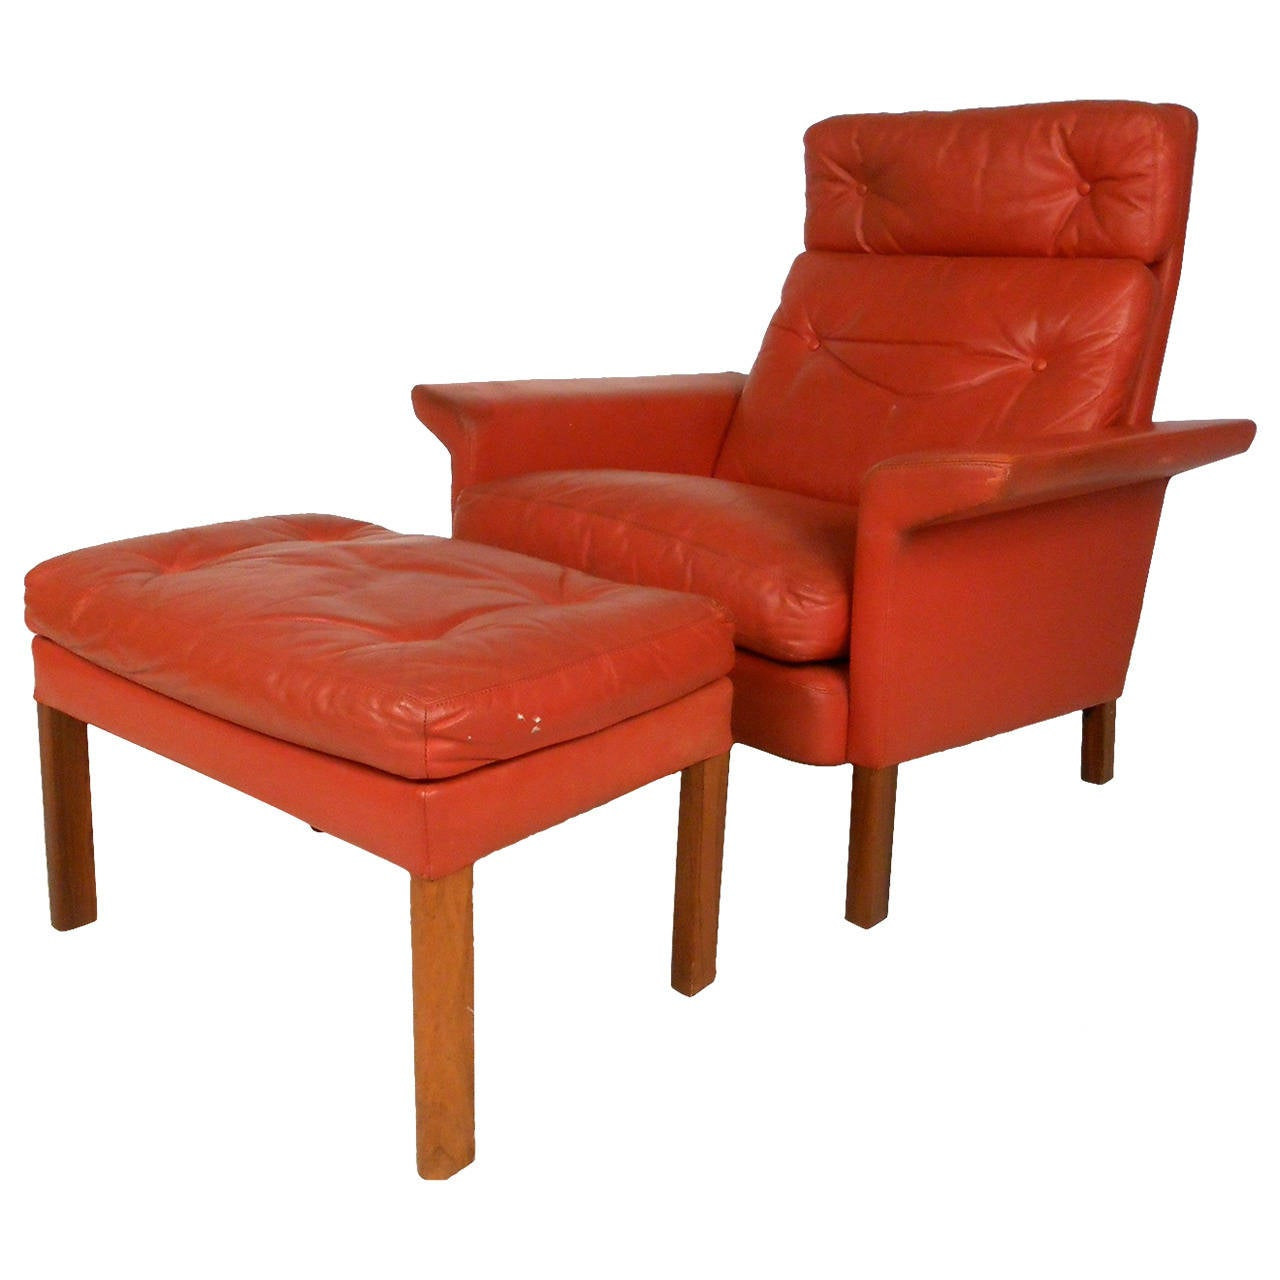 unique hans olsen style danish leather lounge chair with who makes good quality leather sofa who makes good quality leather sofa